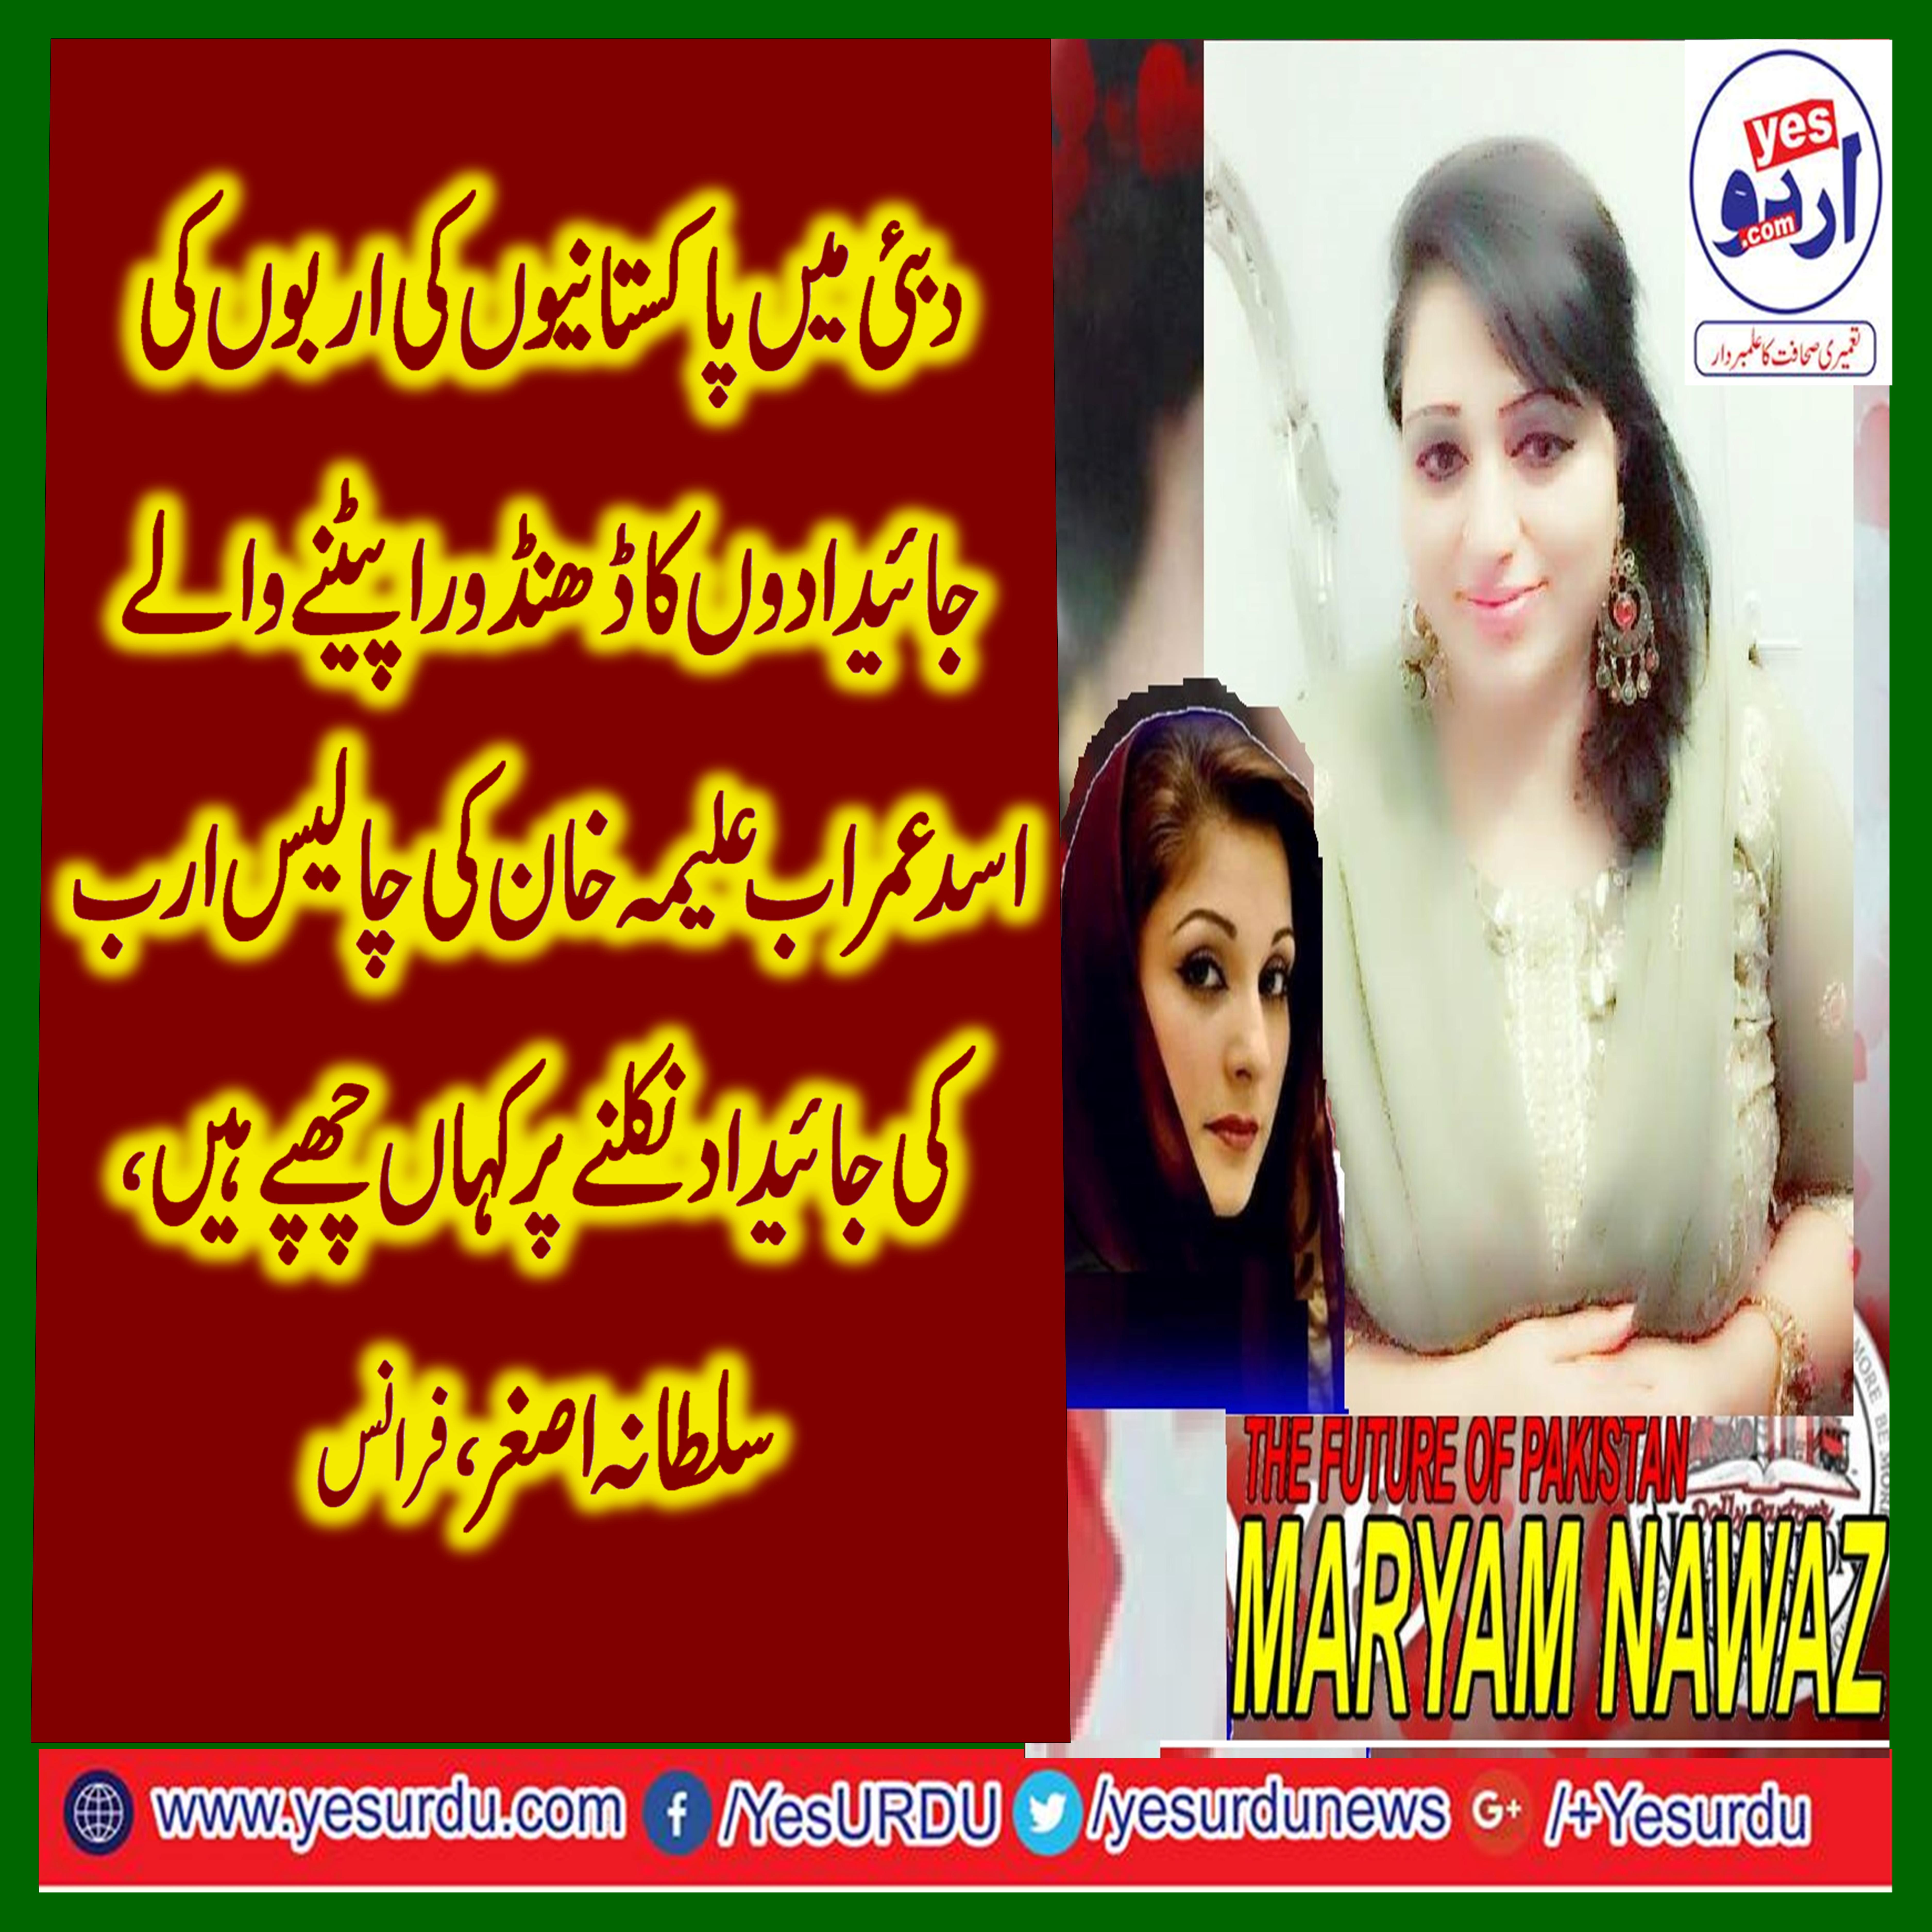 DUBAI, LEAKES, IS, GONE, BACKWARD, ON, DISCOVERING, ALIMA KHAN'S, FORTY, BILLION, PROPERTY, SAYS, SULTANA ASGHAR, PRESIDENT, PMLN, WOMEN WING, FRANCE